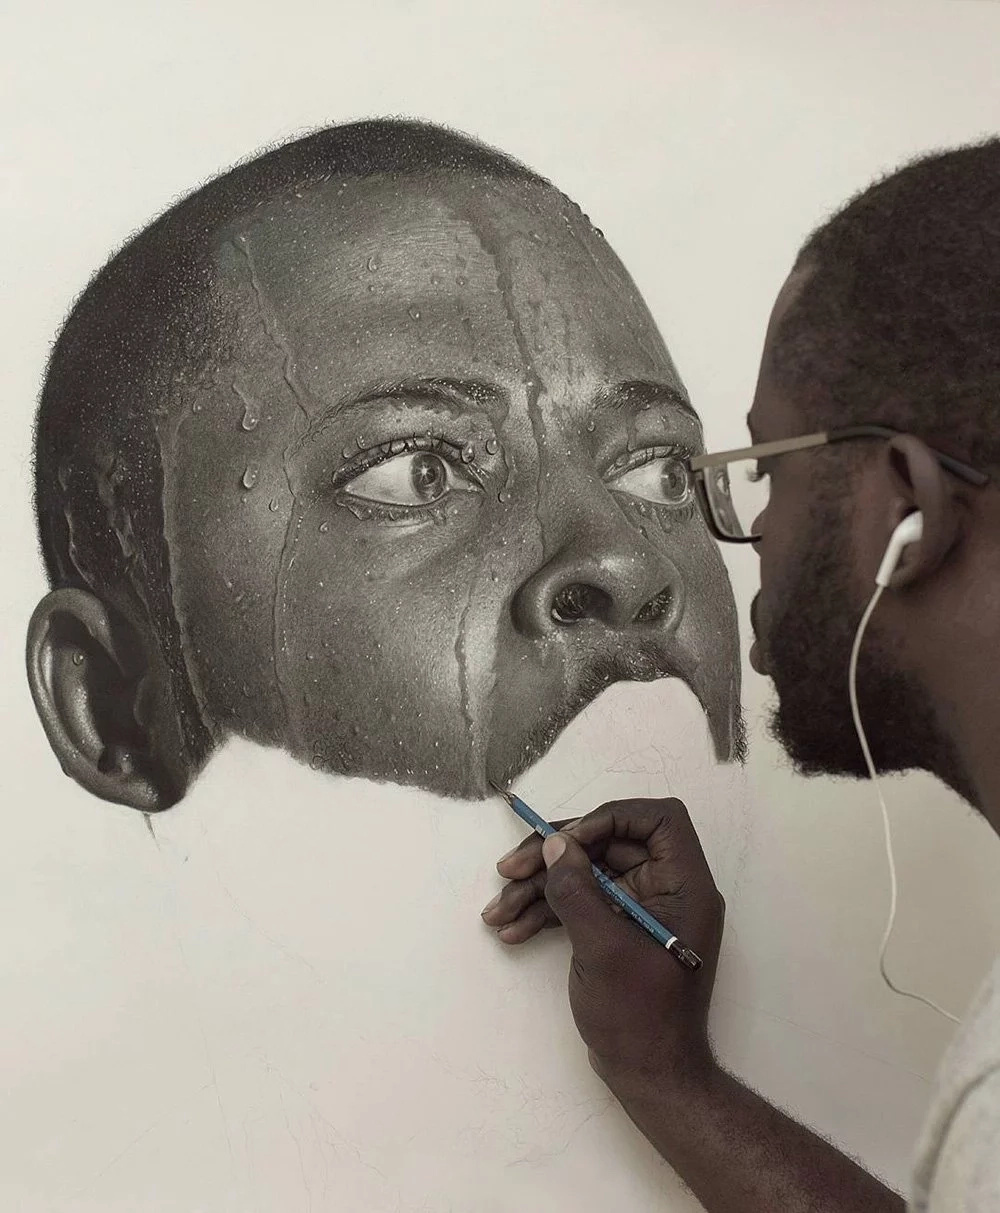 AMAZING ARTIST! These IMPACTING life-sized portraits are completely UNBELIEVABLE in their beauty (photos)